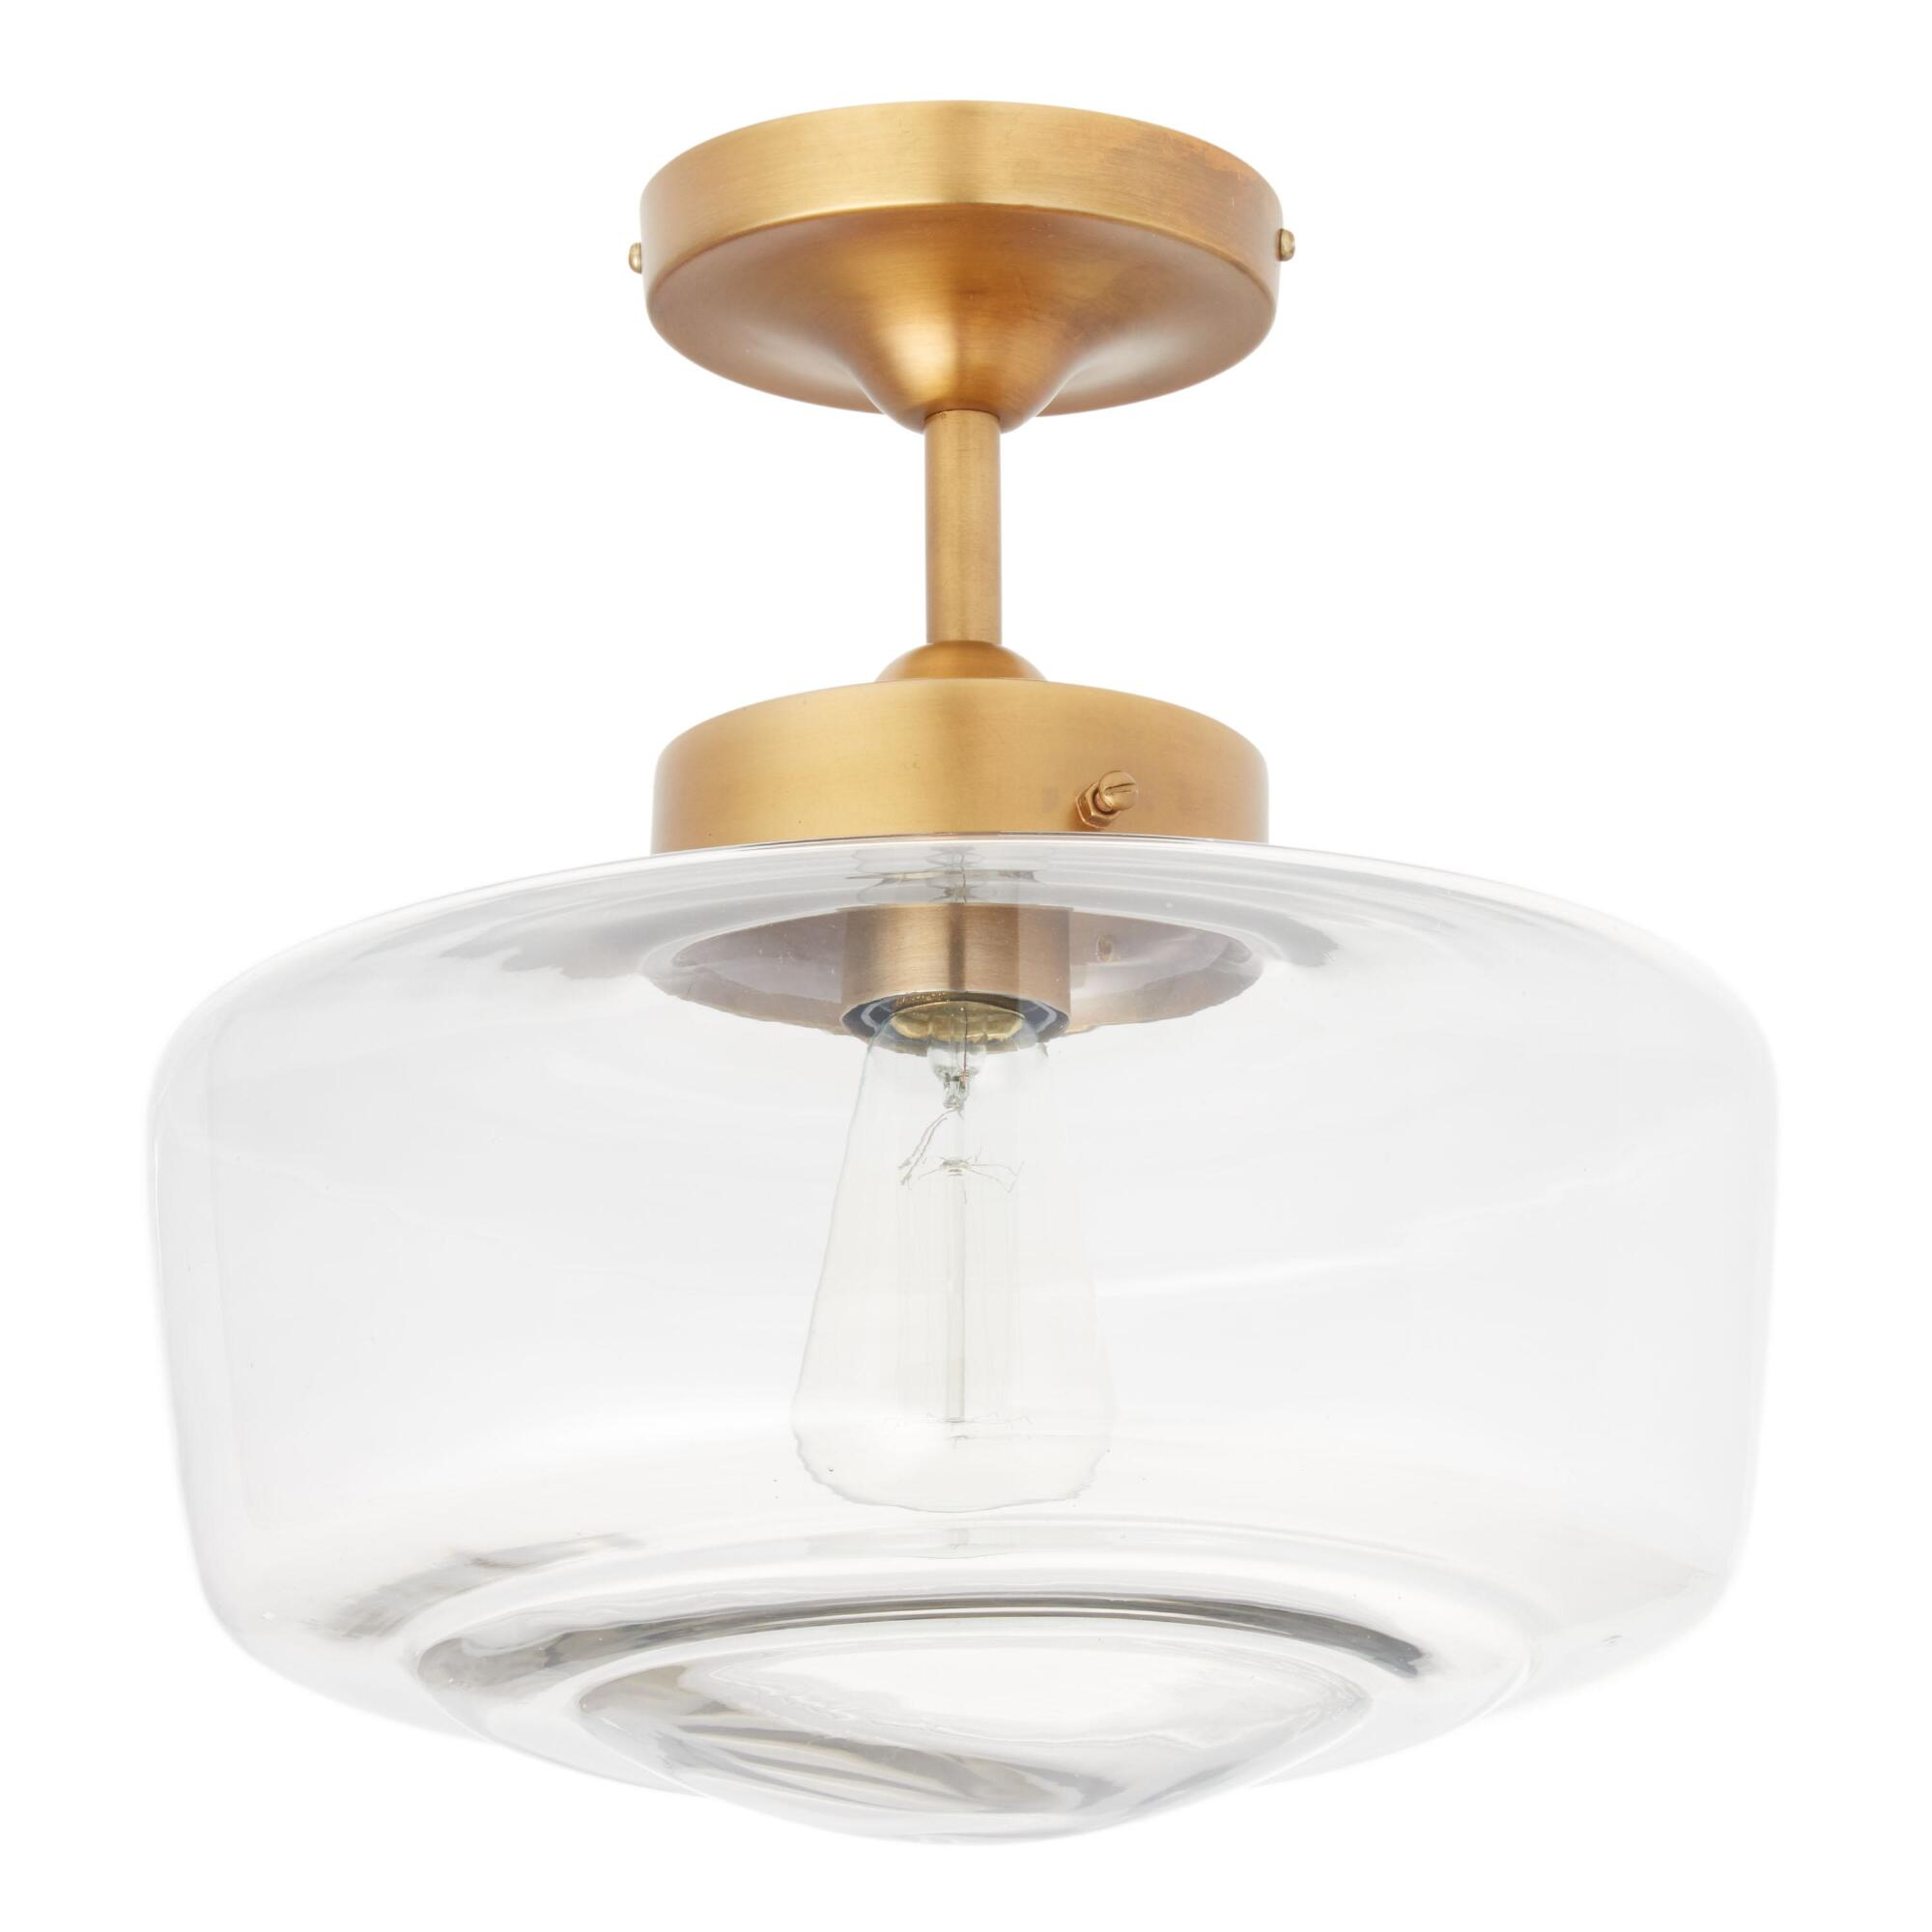 Brass and Glass Dome Semi Flush Mount Ceiling Light by World Market